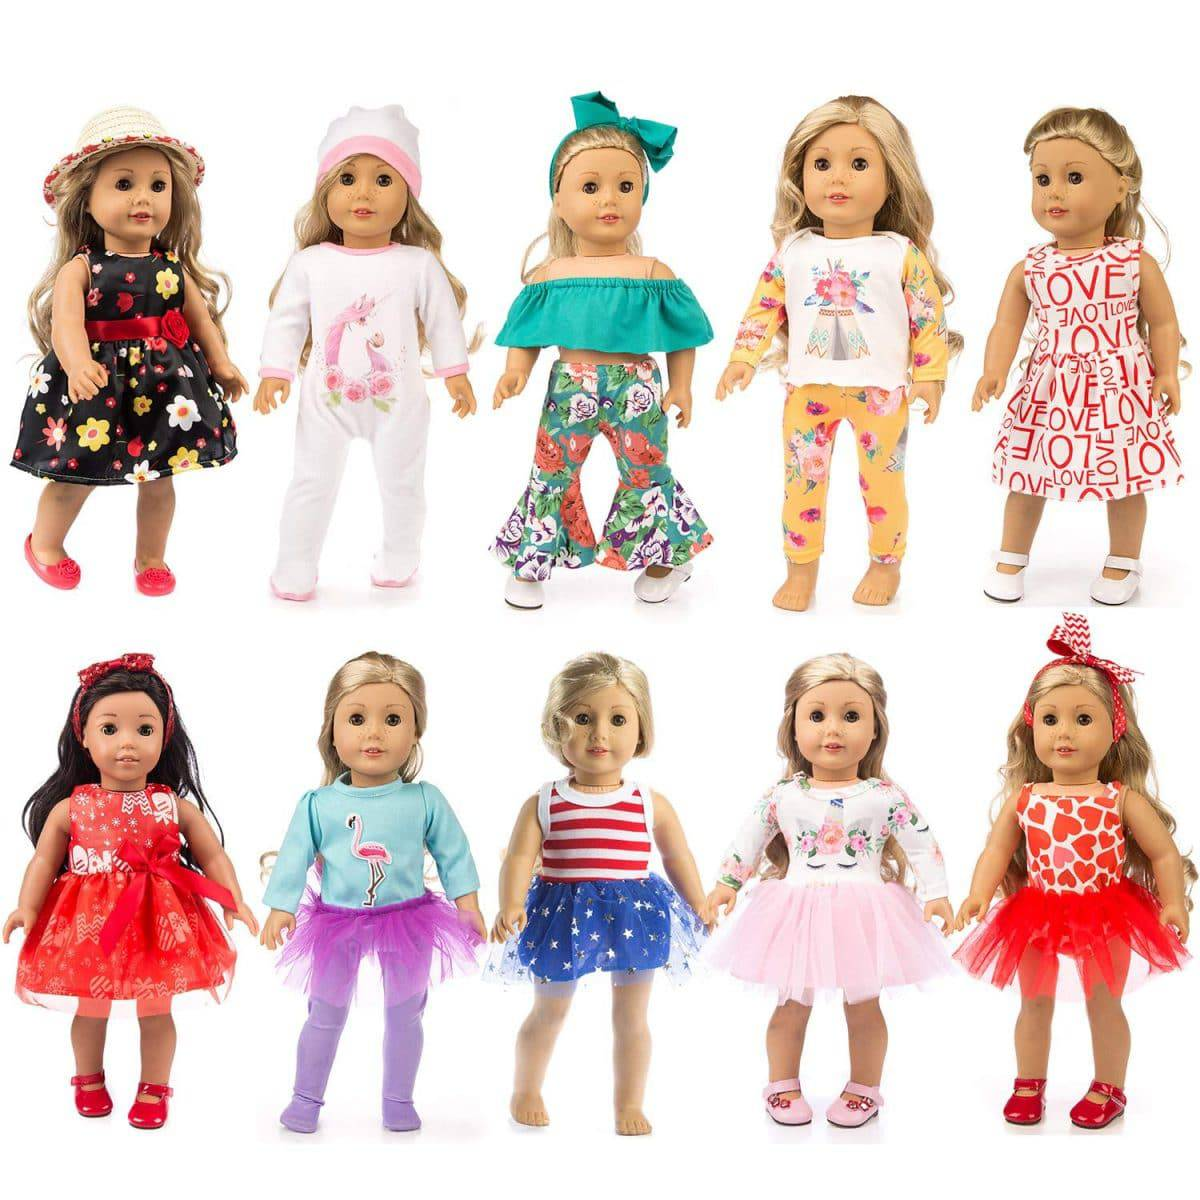 Doll Clothes With 12 Kinds of Styles Doll Accessories For 18inch Baby Girl Doll